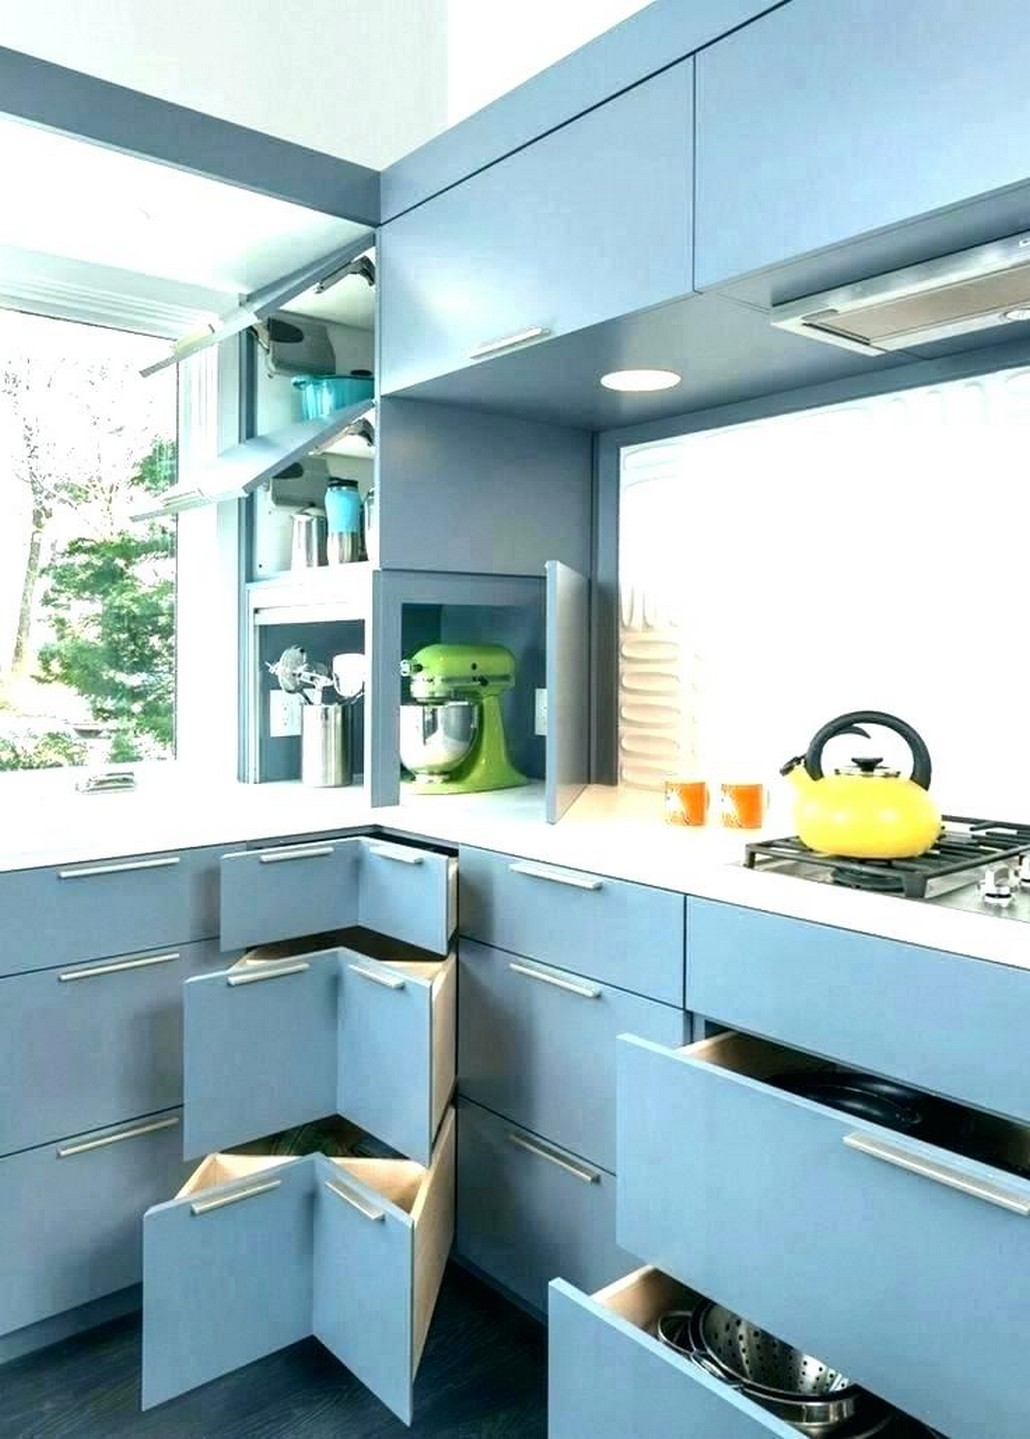 Matchless Design Idea of Kitchen - Mindblowing!!